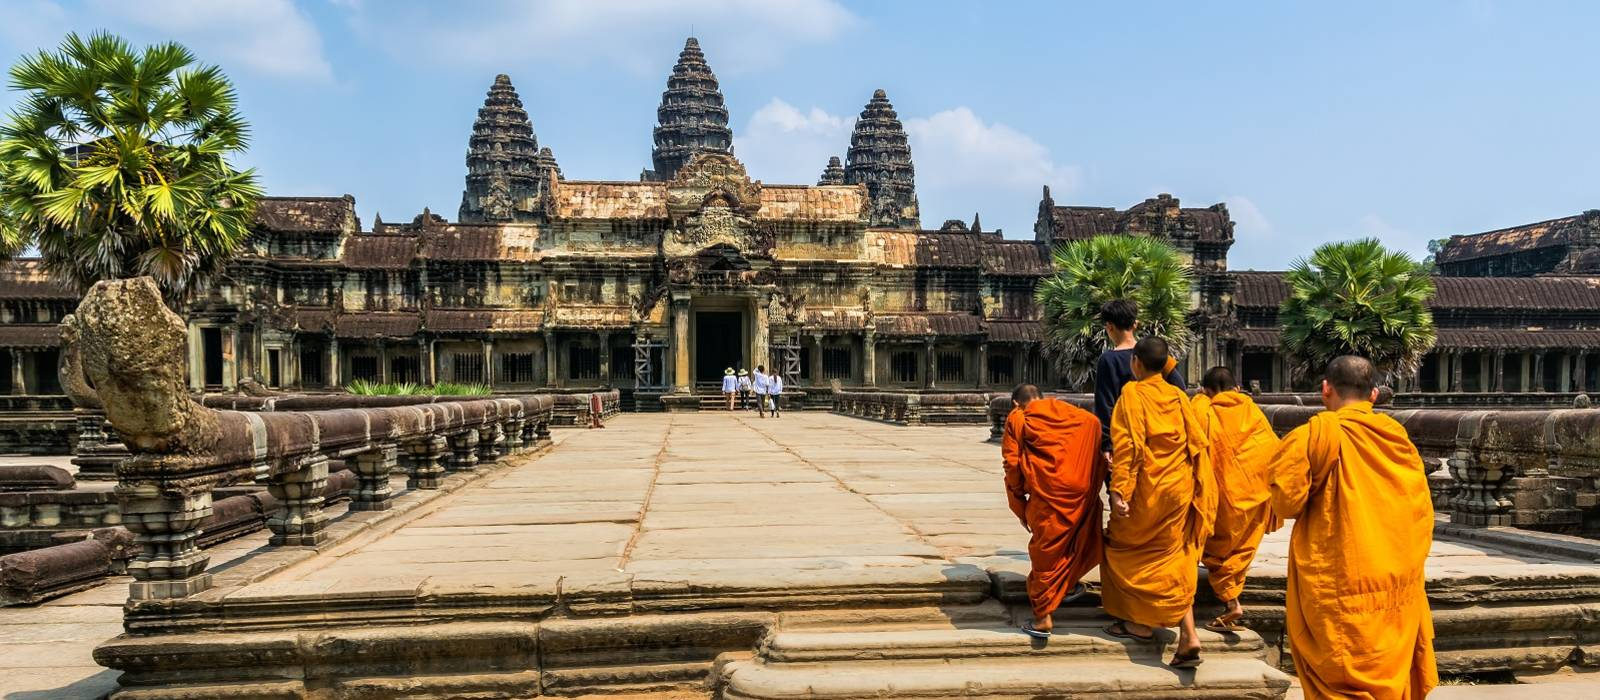 Amazing view of Angkor Wat is a temple complex in Cambodia and the largest religious monument in the world - history of Cambodia